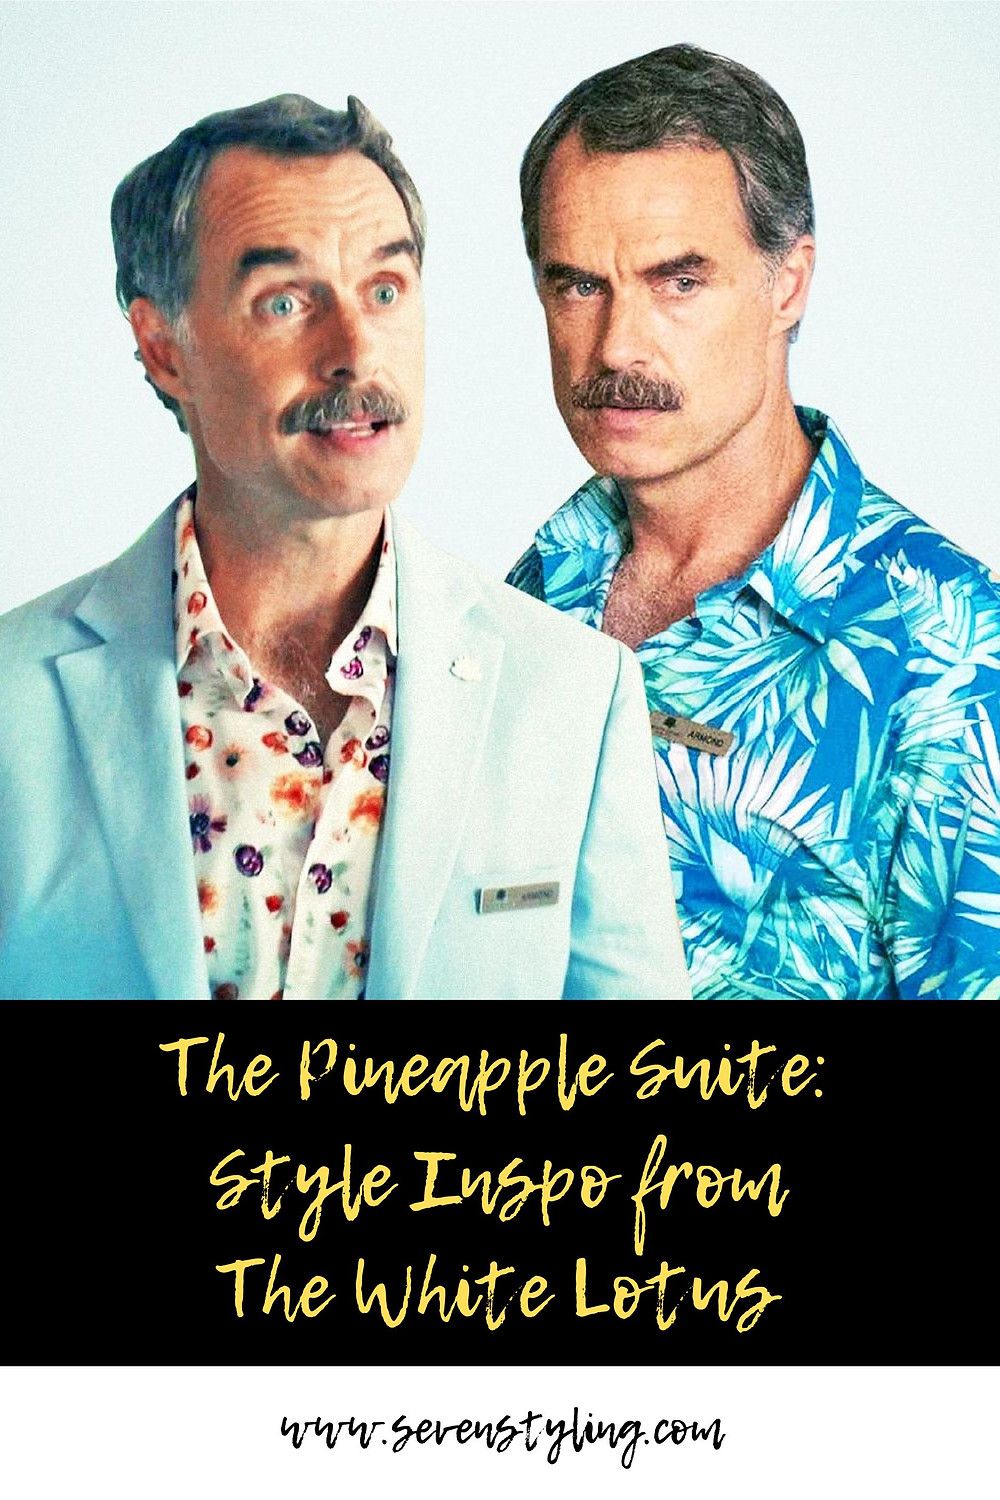 The Pineapple Suite: Style Inspo from The White Lotus